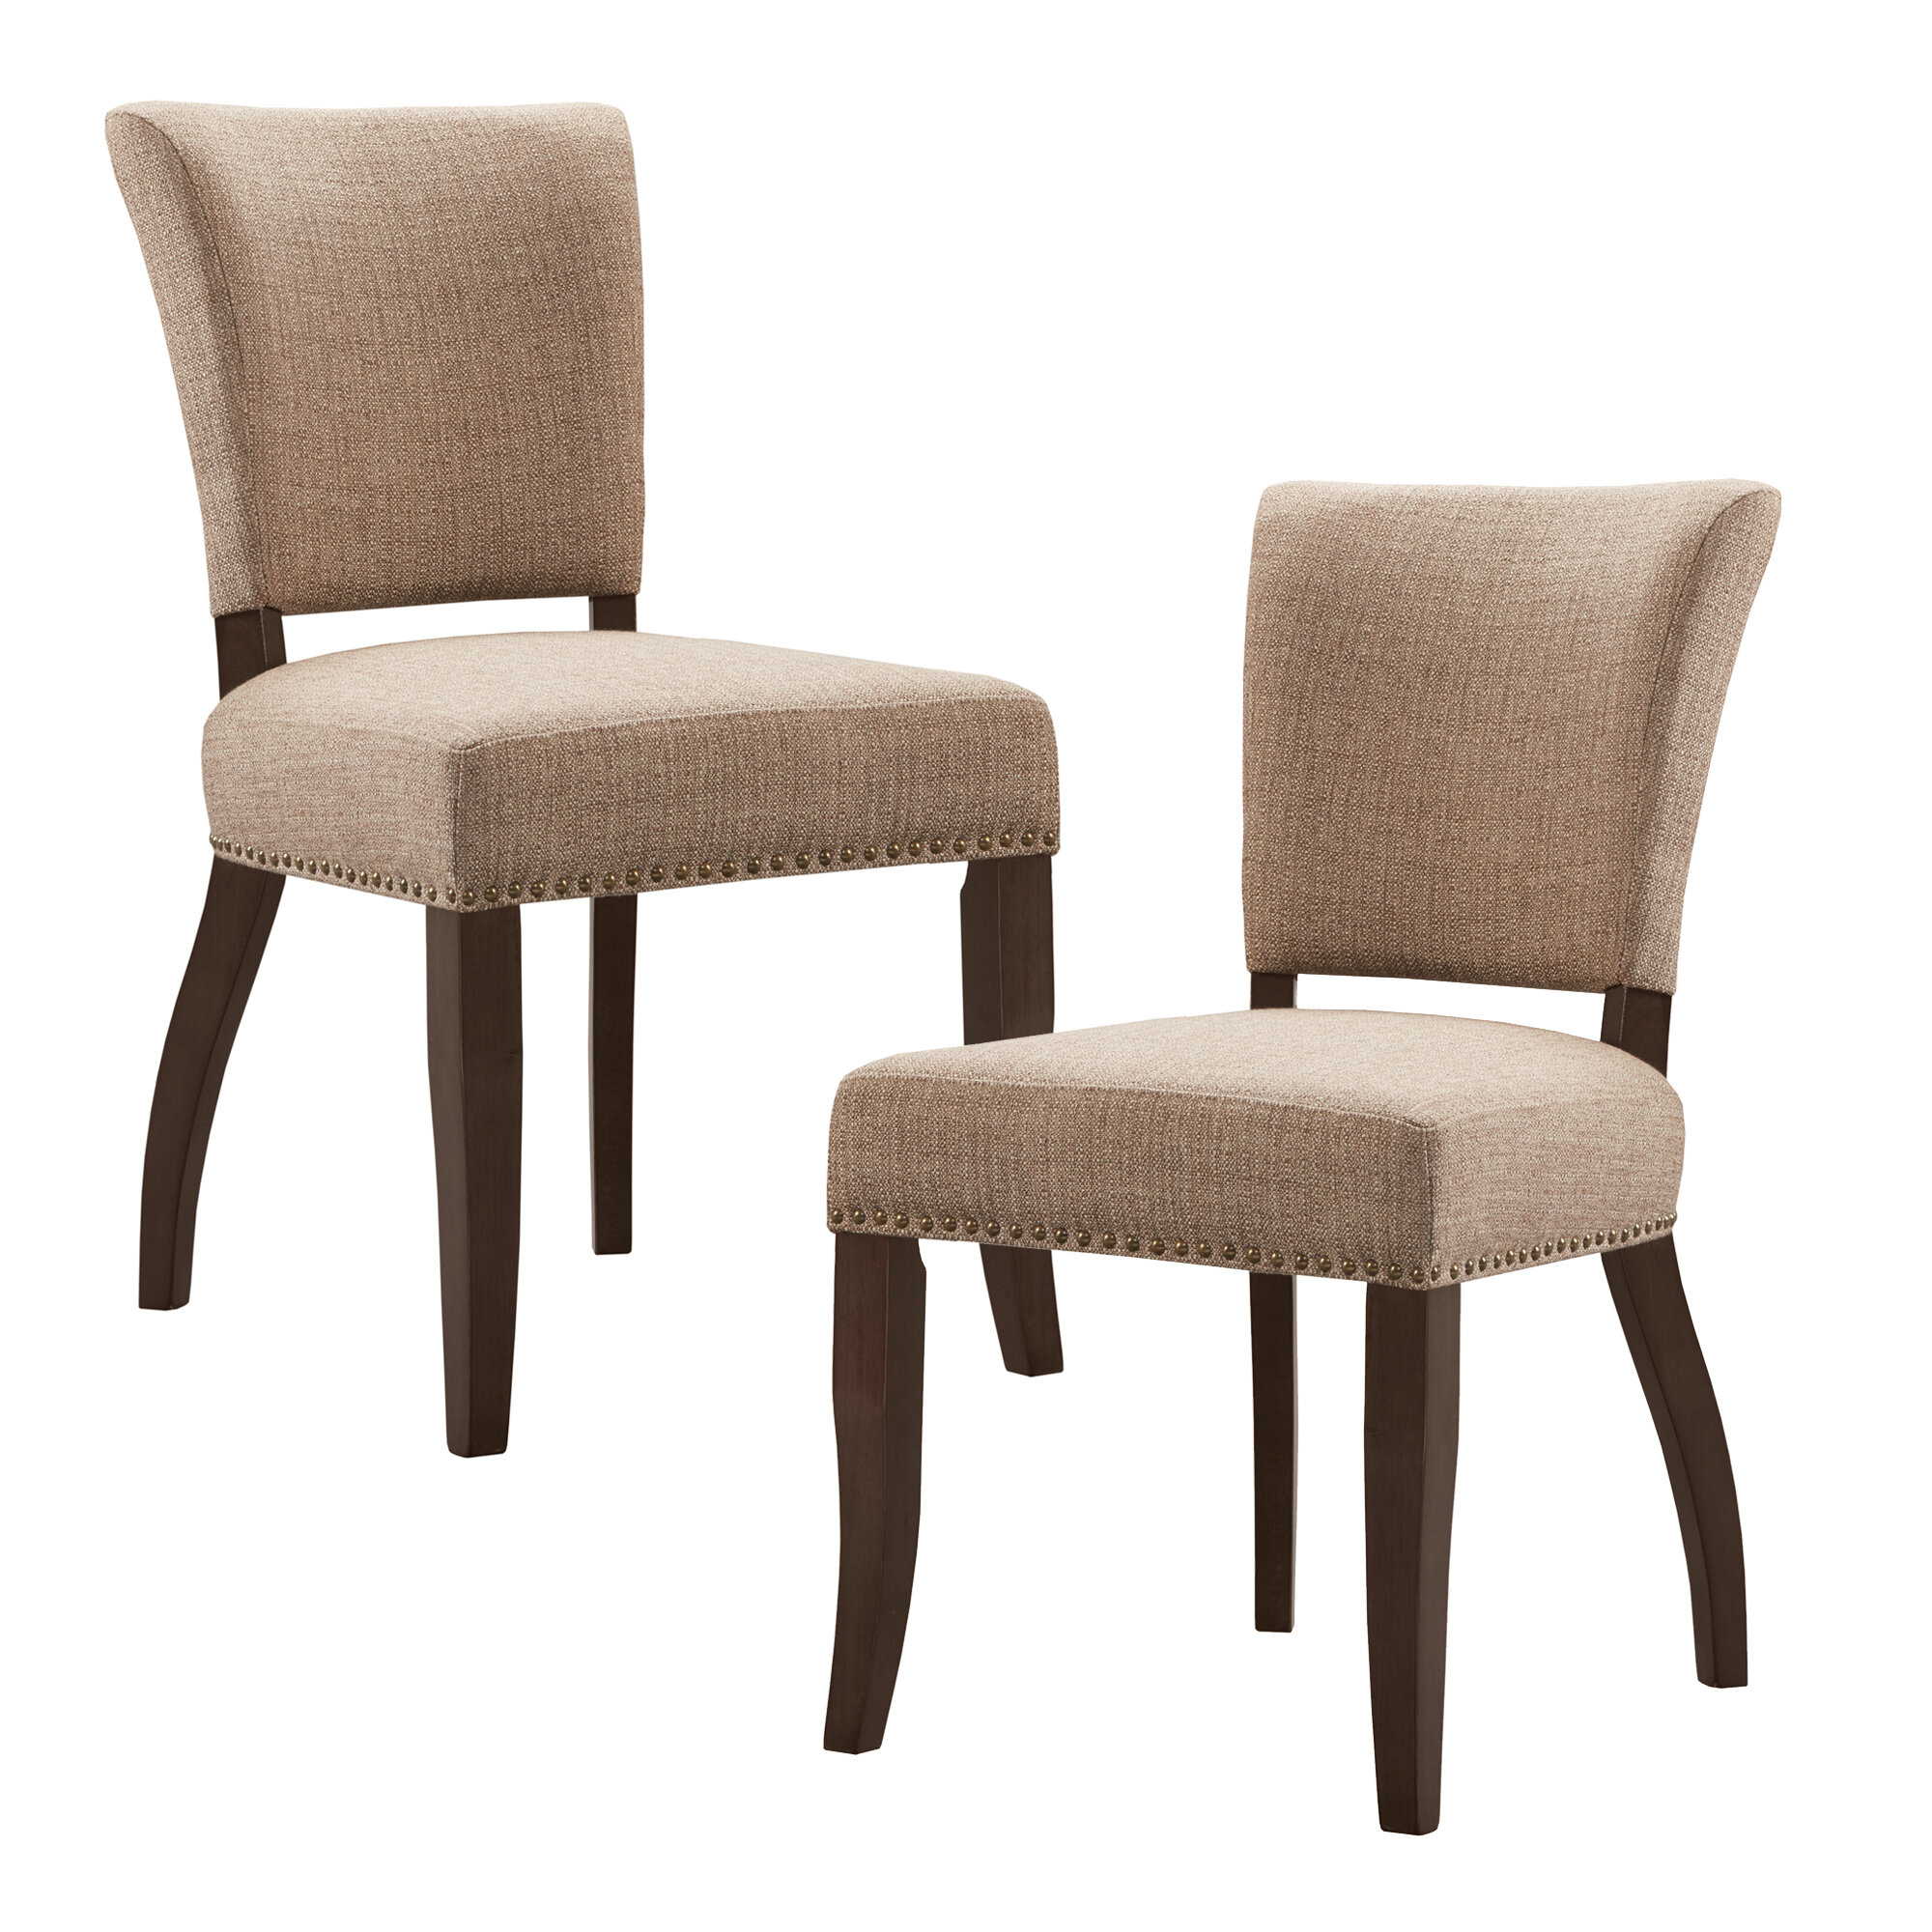 Miraculous Alasan Upholstered Dining Chair Caraccident5 Cool Chair Designs And Ideas Caraccident5Info